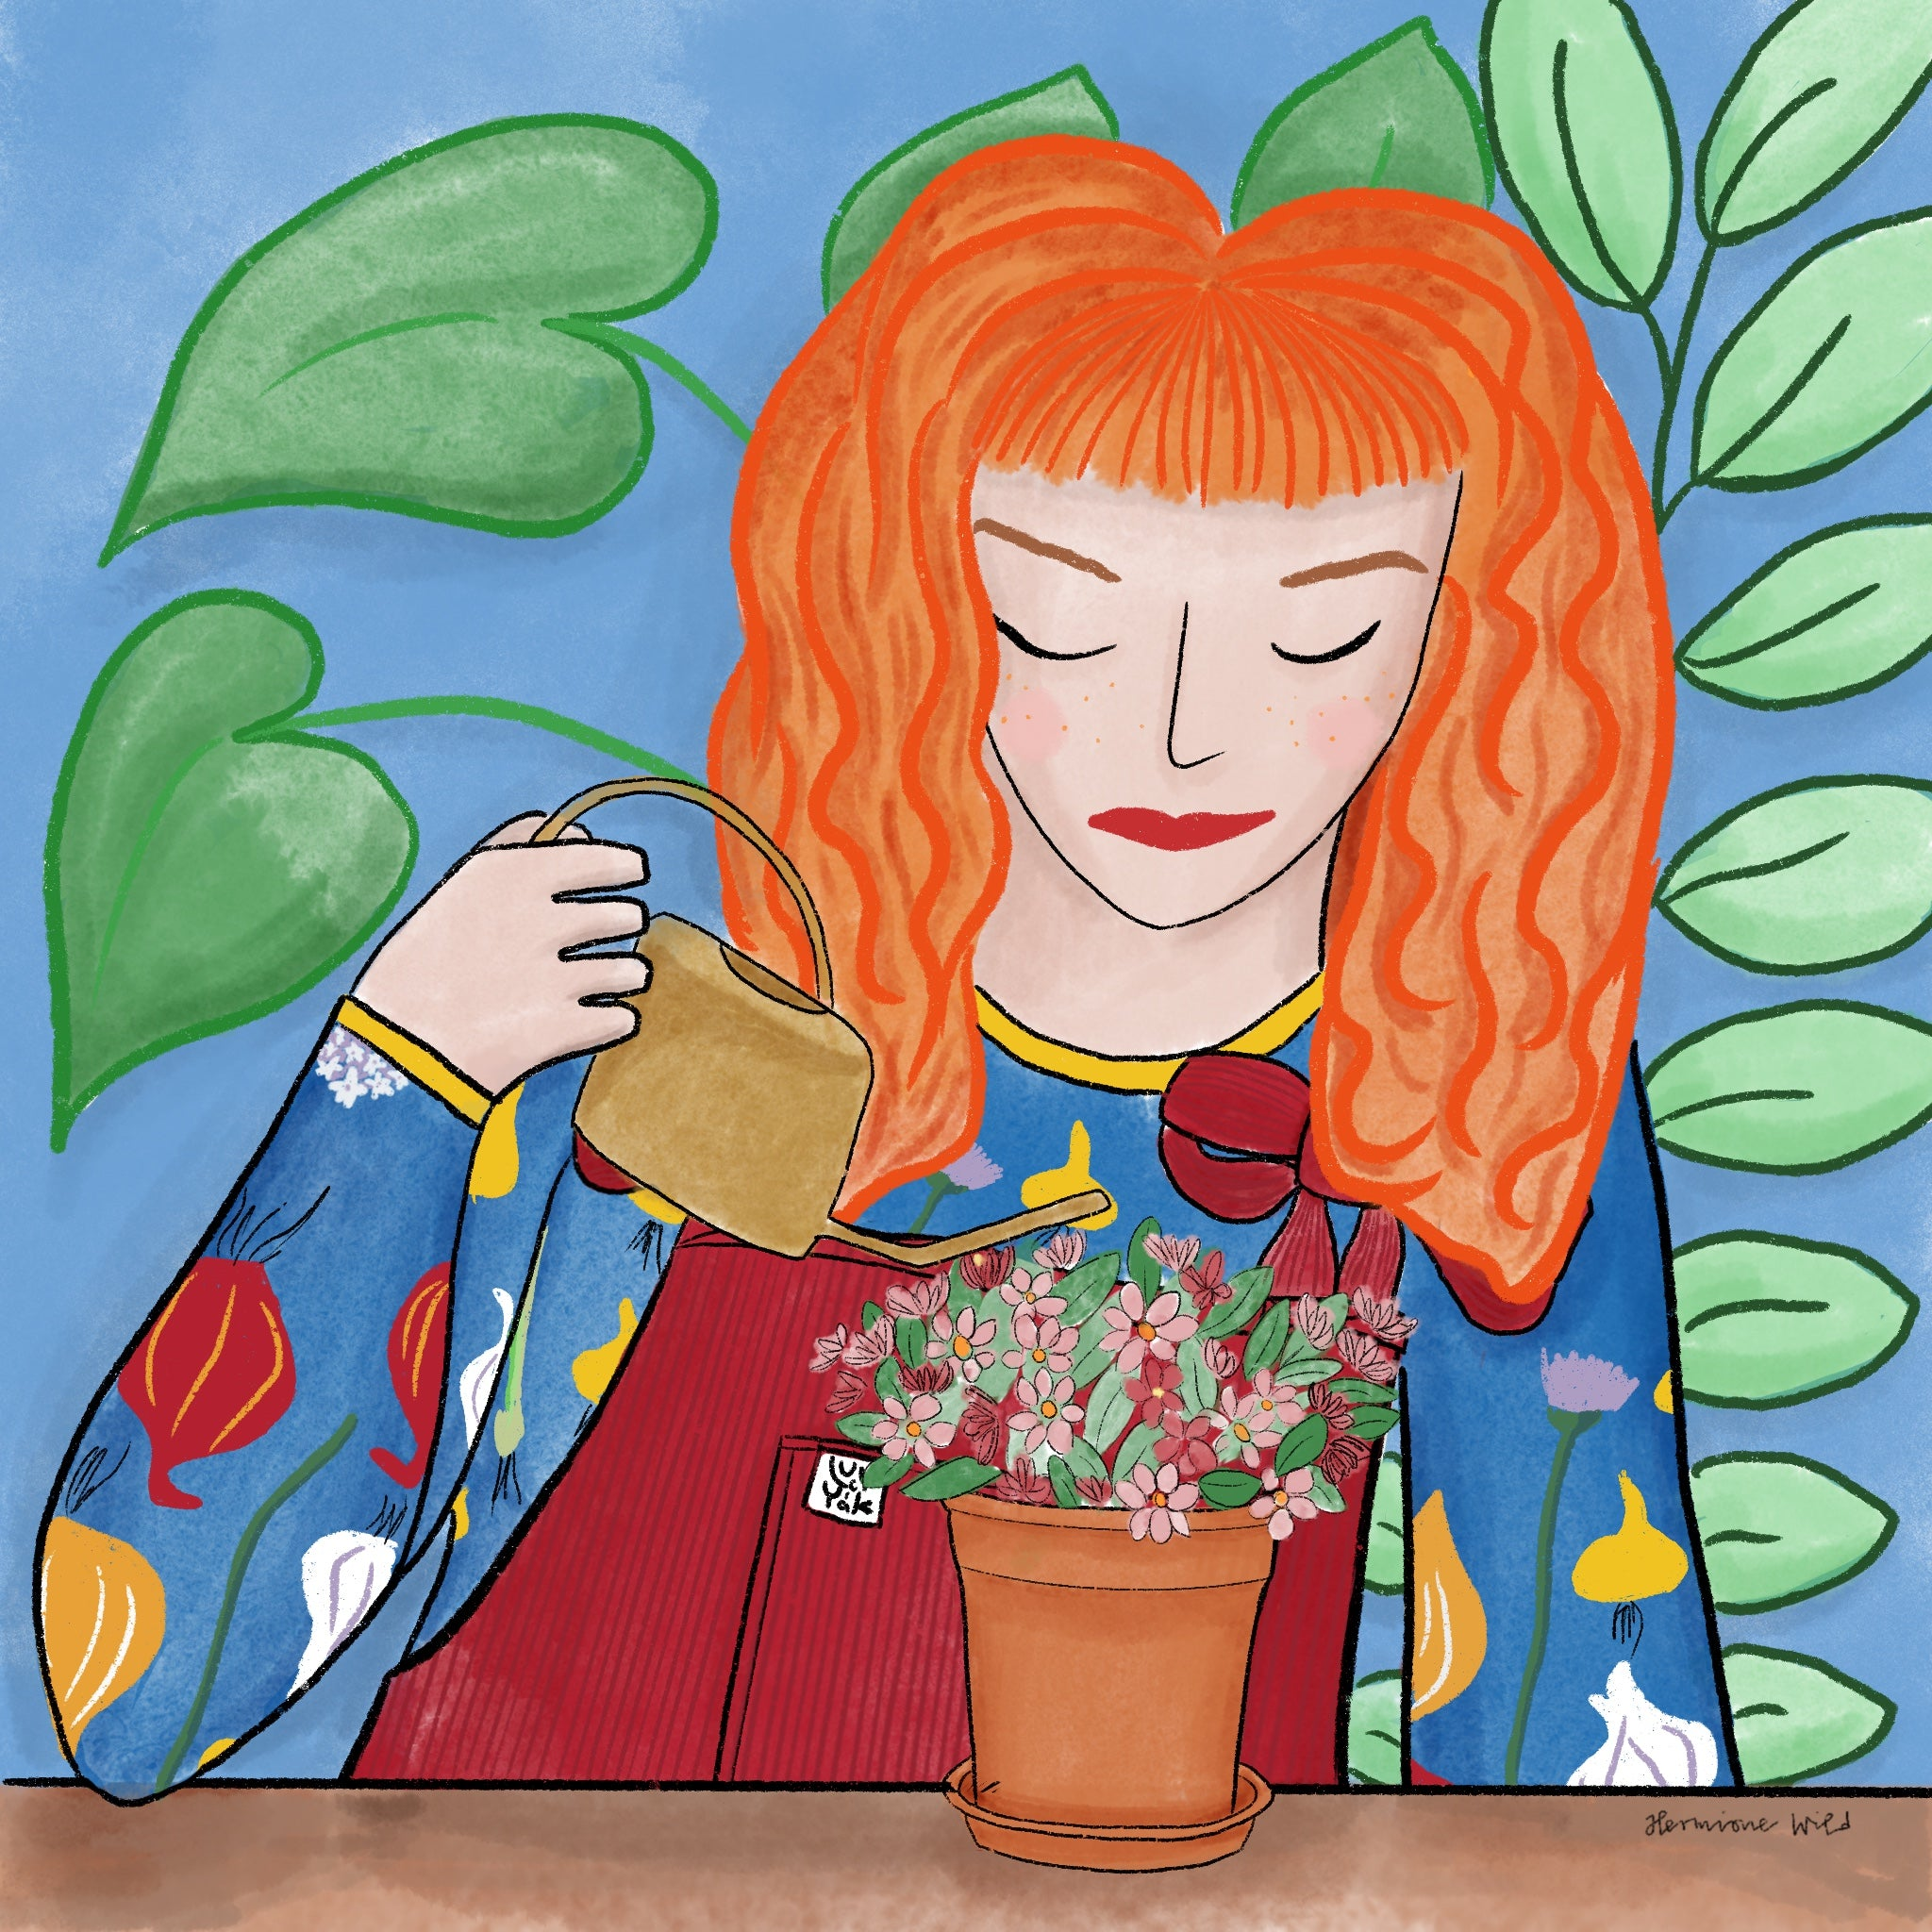 Woman with red hair watering plants wearing dungarees